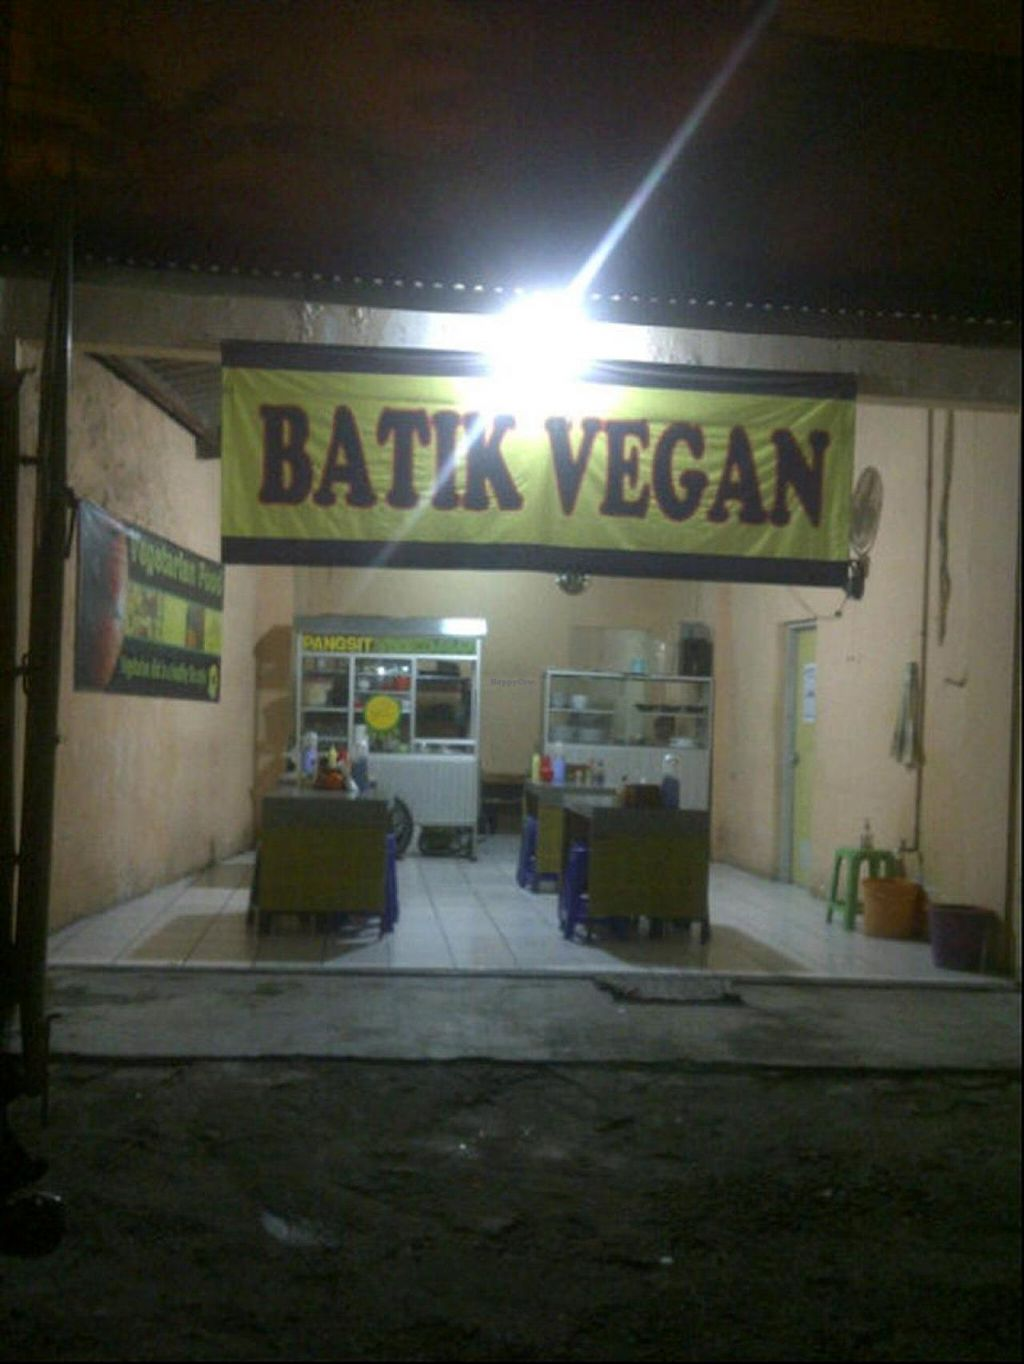 "Photo of Batik Vegan  by <a href=""/members/profile/marioxiao"">marioxiao</a> <br/>Batik Vegan <br/> July 22, 2015  - <a href='/contact/abuse/image/60911/110466'>Report</a>"